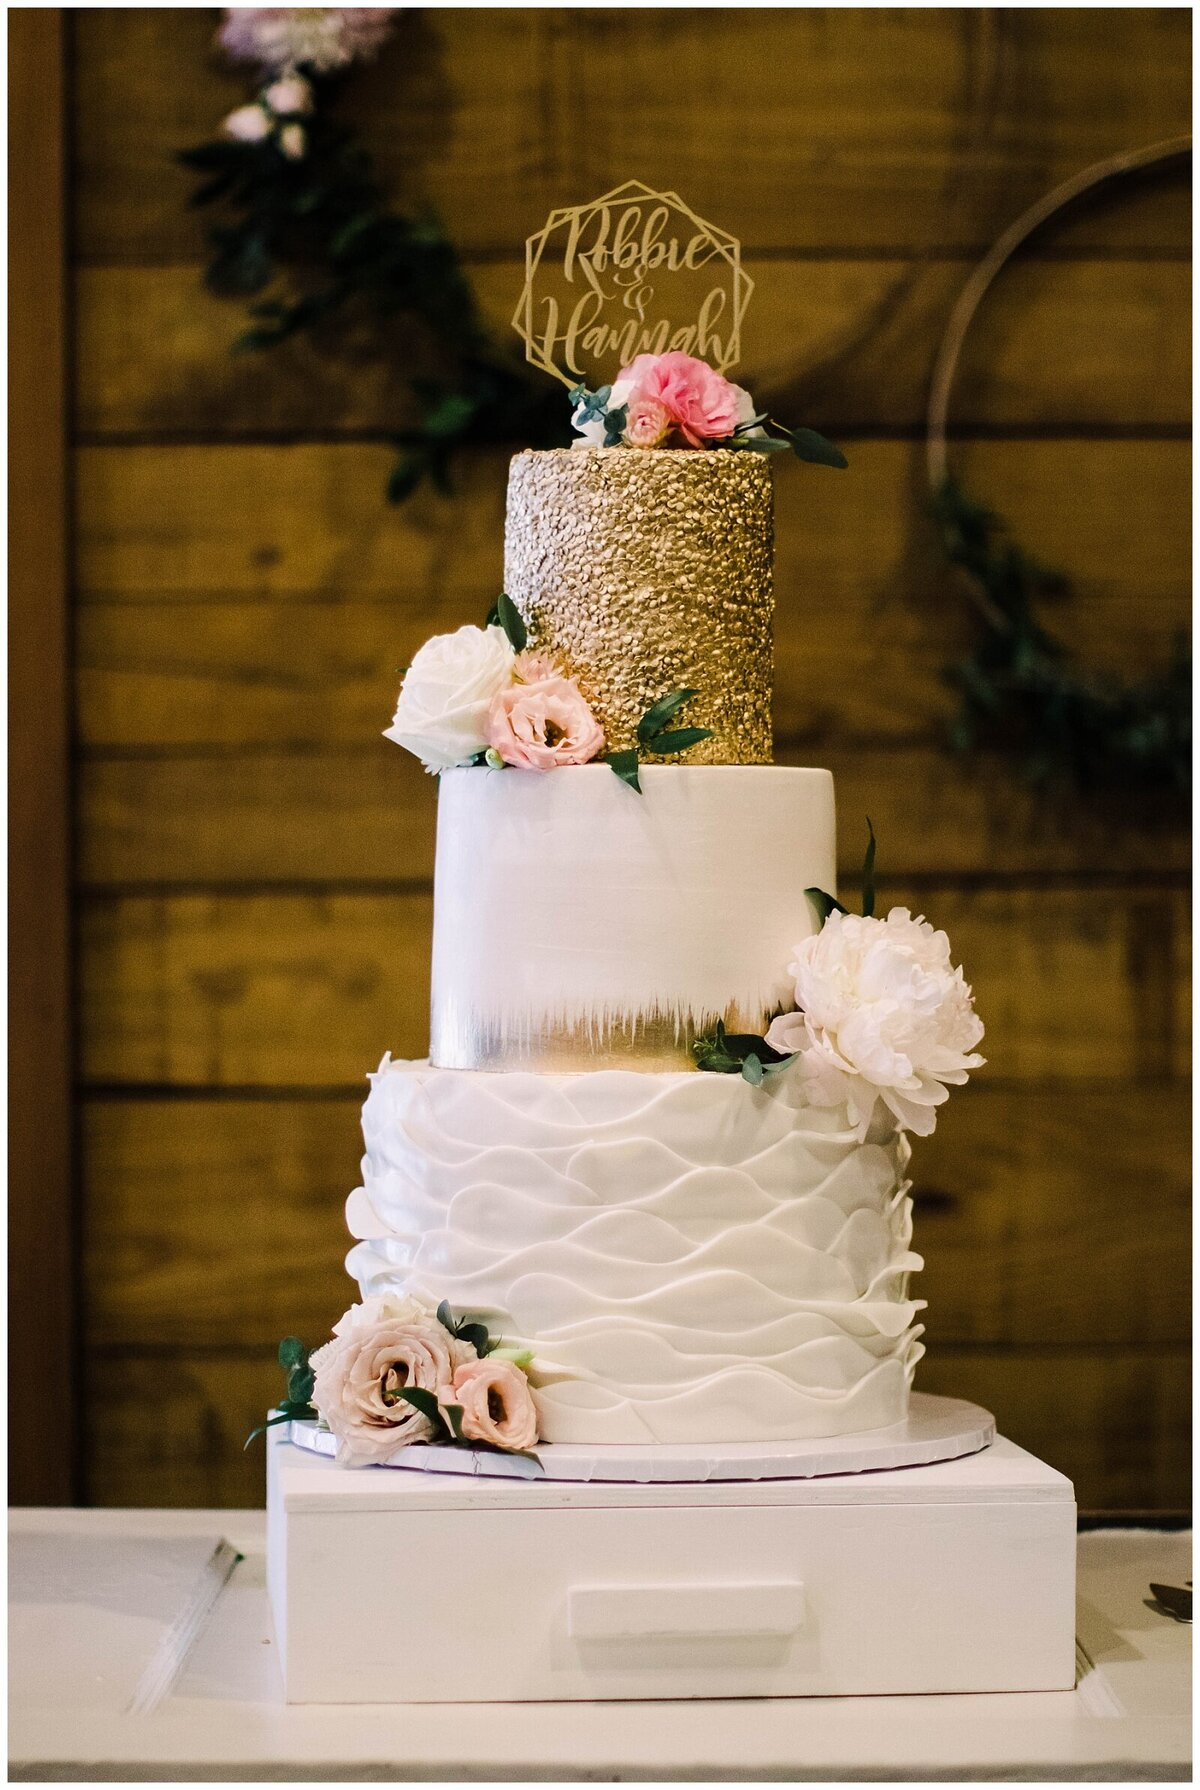 Houston Wedding Planner for Vintage Blush Floral Hoop Inspired Wedding at Emery's Buffalo Creek- J. Richter Events_0010